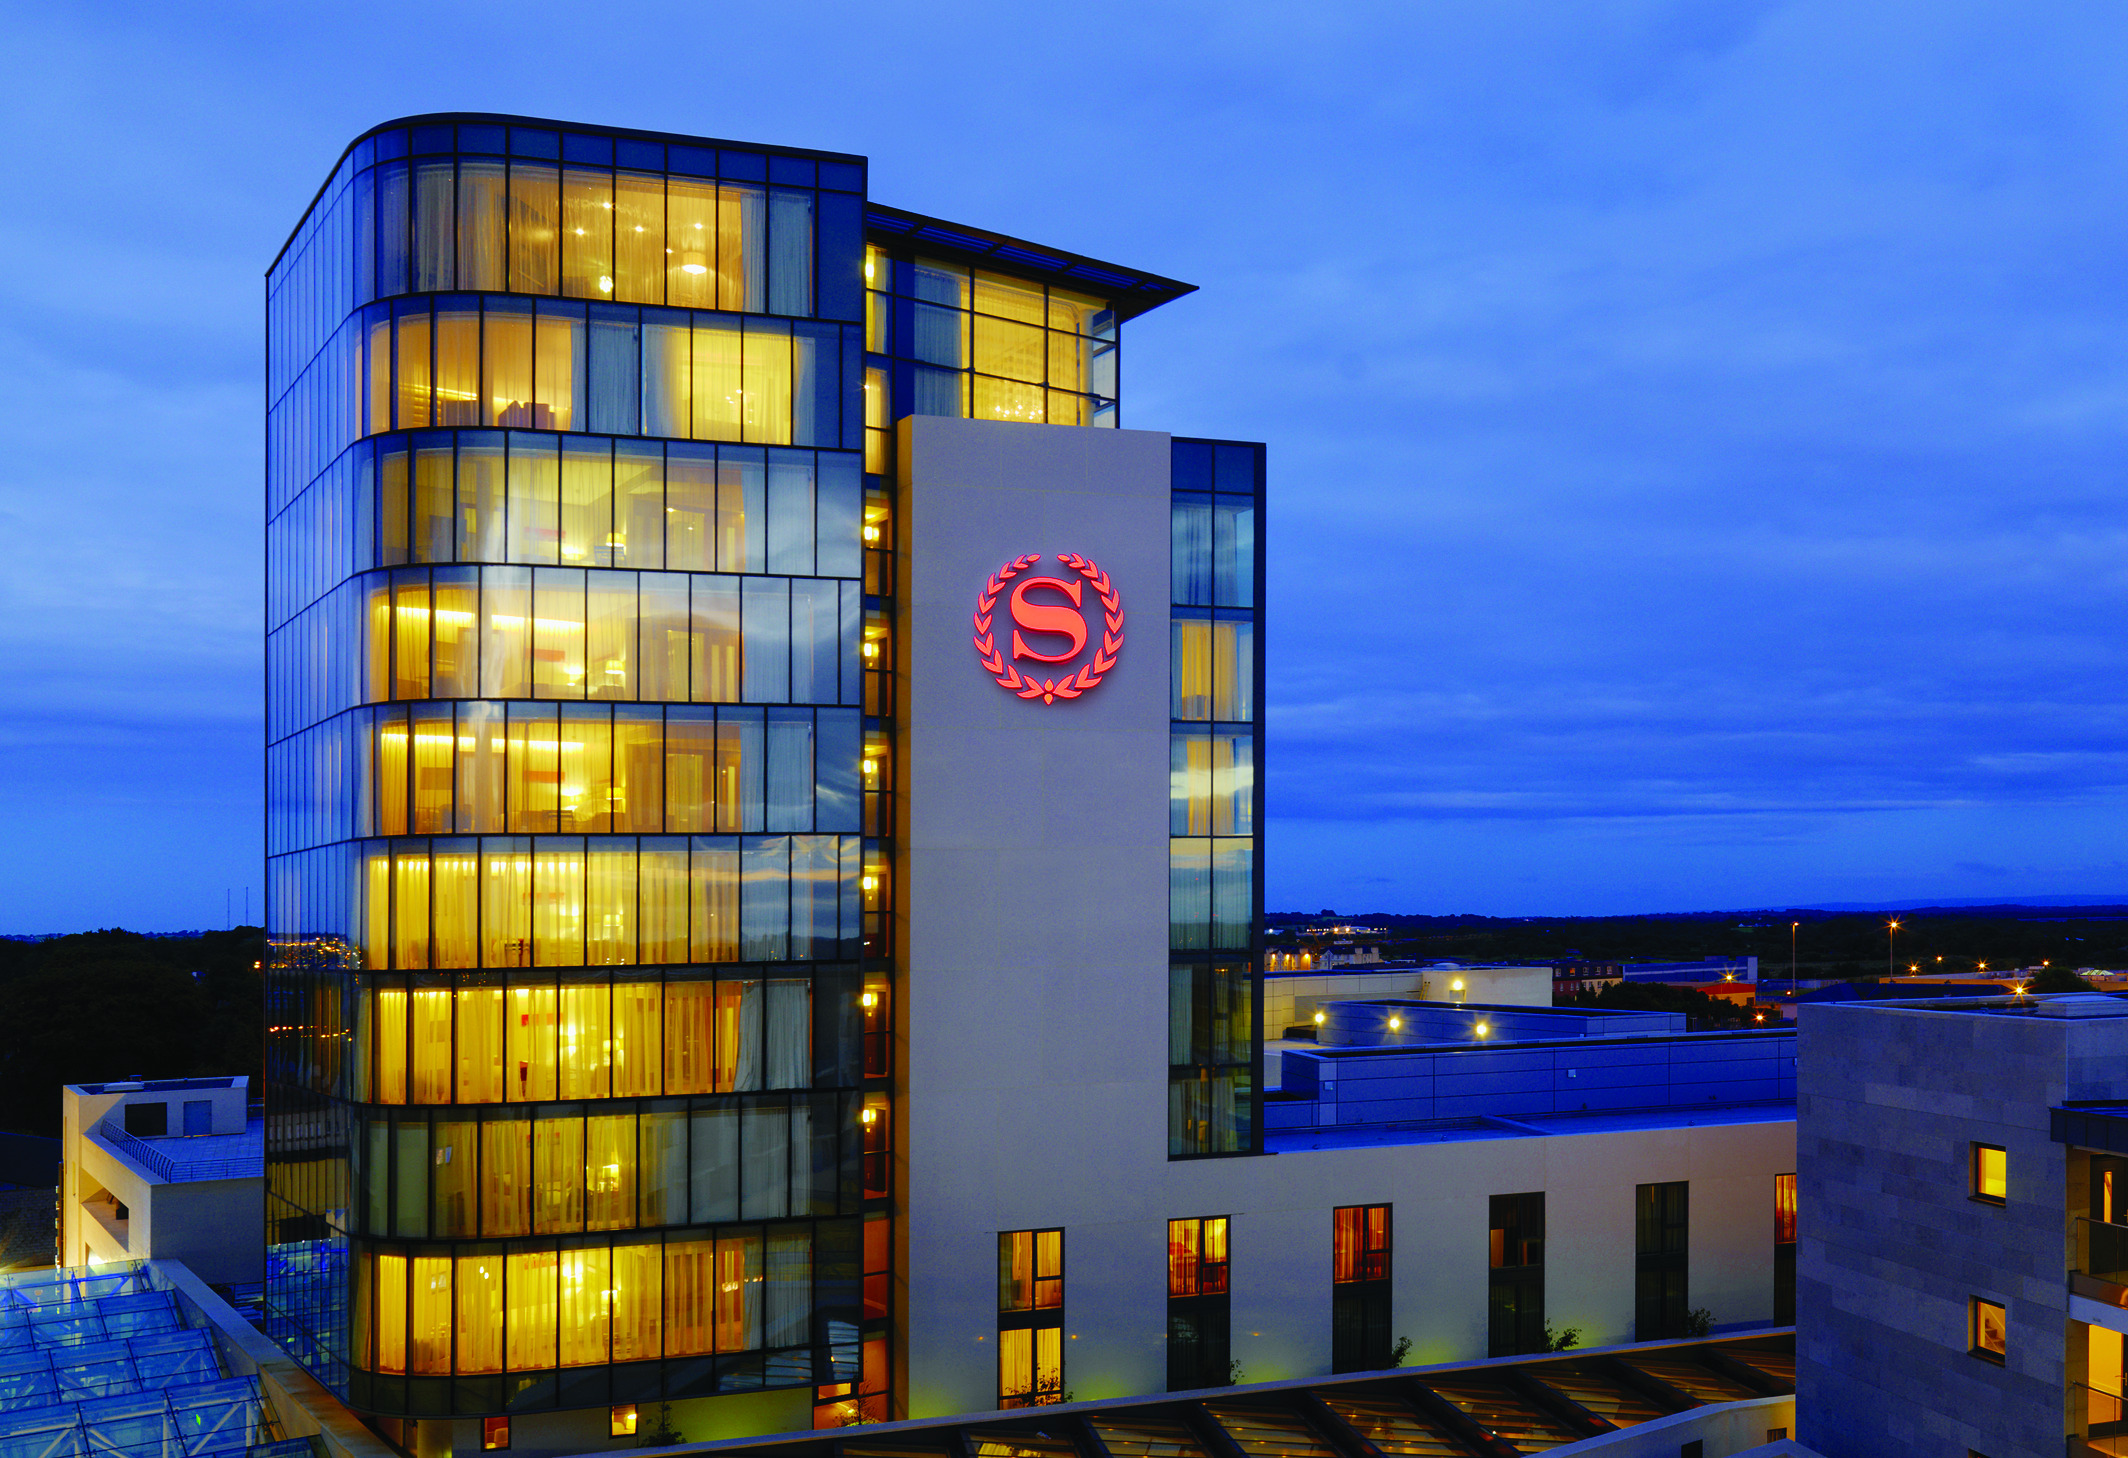 Things to do in County Westmeath, Ireland - Sheraton Athlone Hotel - Sheraton Athlone 12 Storey Tower - YourDaysOut - Photo 6